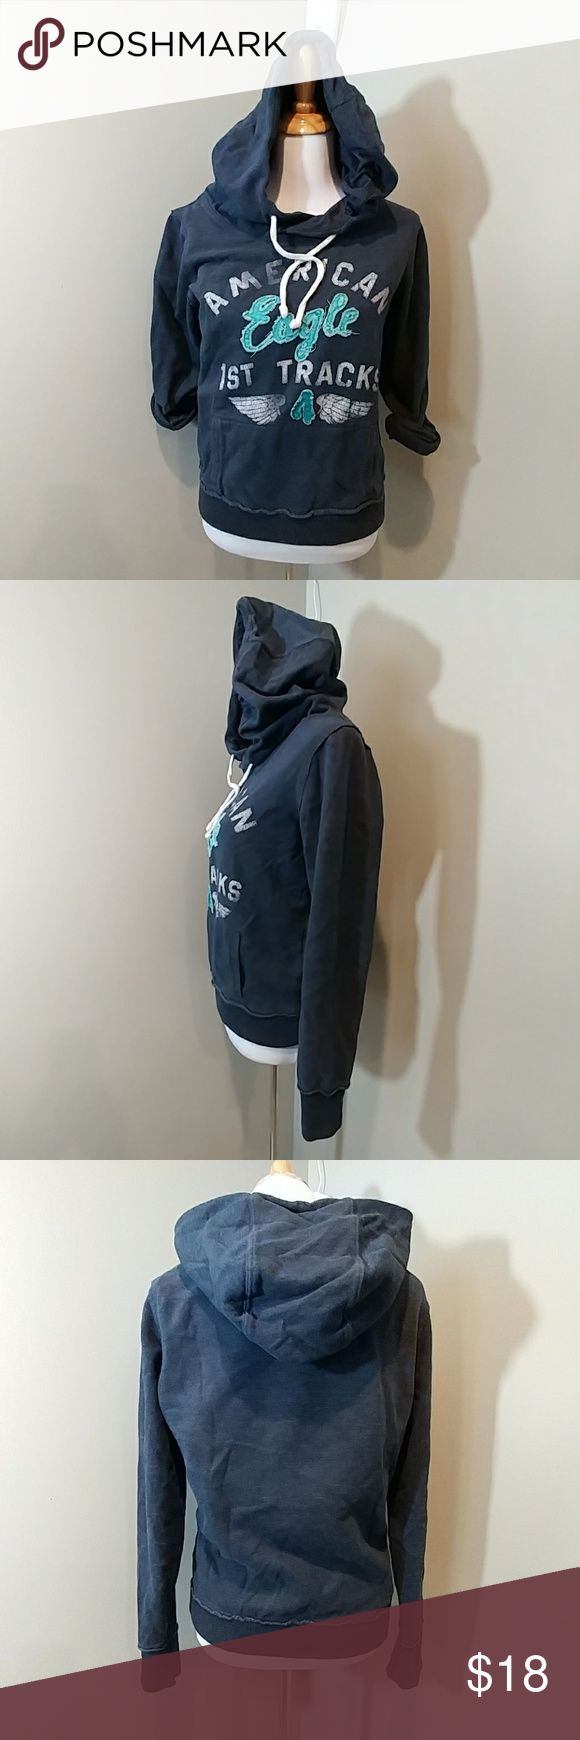 American Eagle Outfitters Juniors Graphic Hoodie Pre-Owned in Excellent Condition! The Front is designed to look vintage.  Pocket in the front to warm your hands.  Pull string for hood Size Medium  Cotton Blend American Eagle Outfitters Tops Sweatshirts & Hoodies